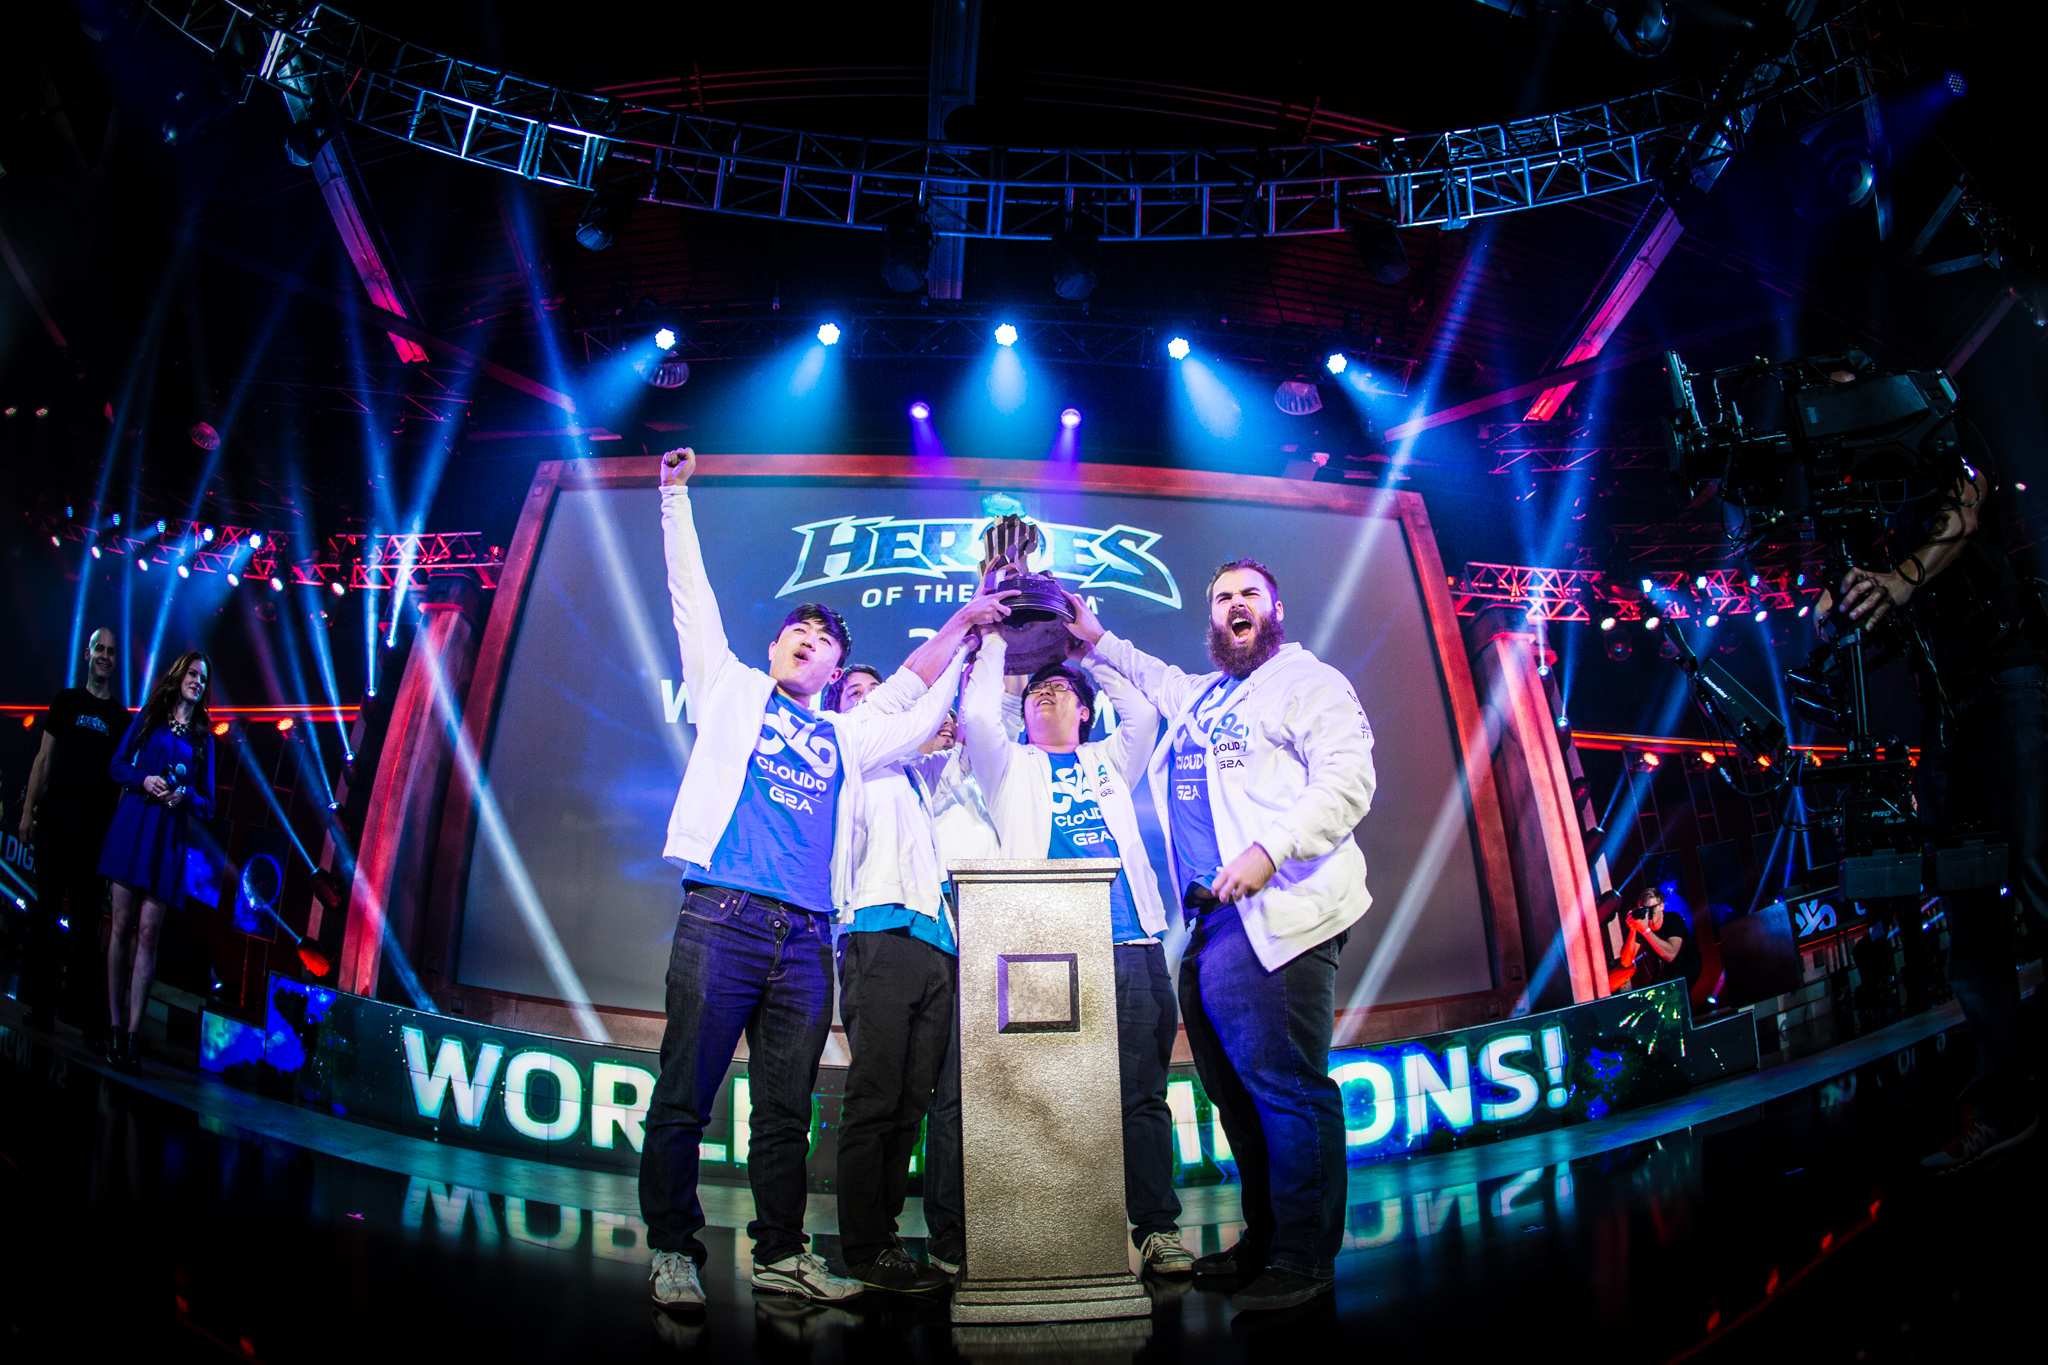 Cloud 9 won the 2015 BlizzCon Heroes of the Storm championship.